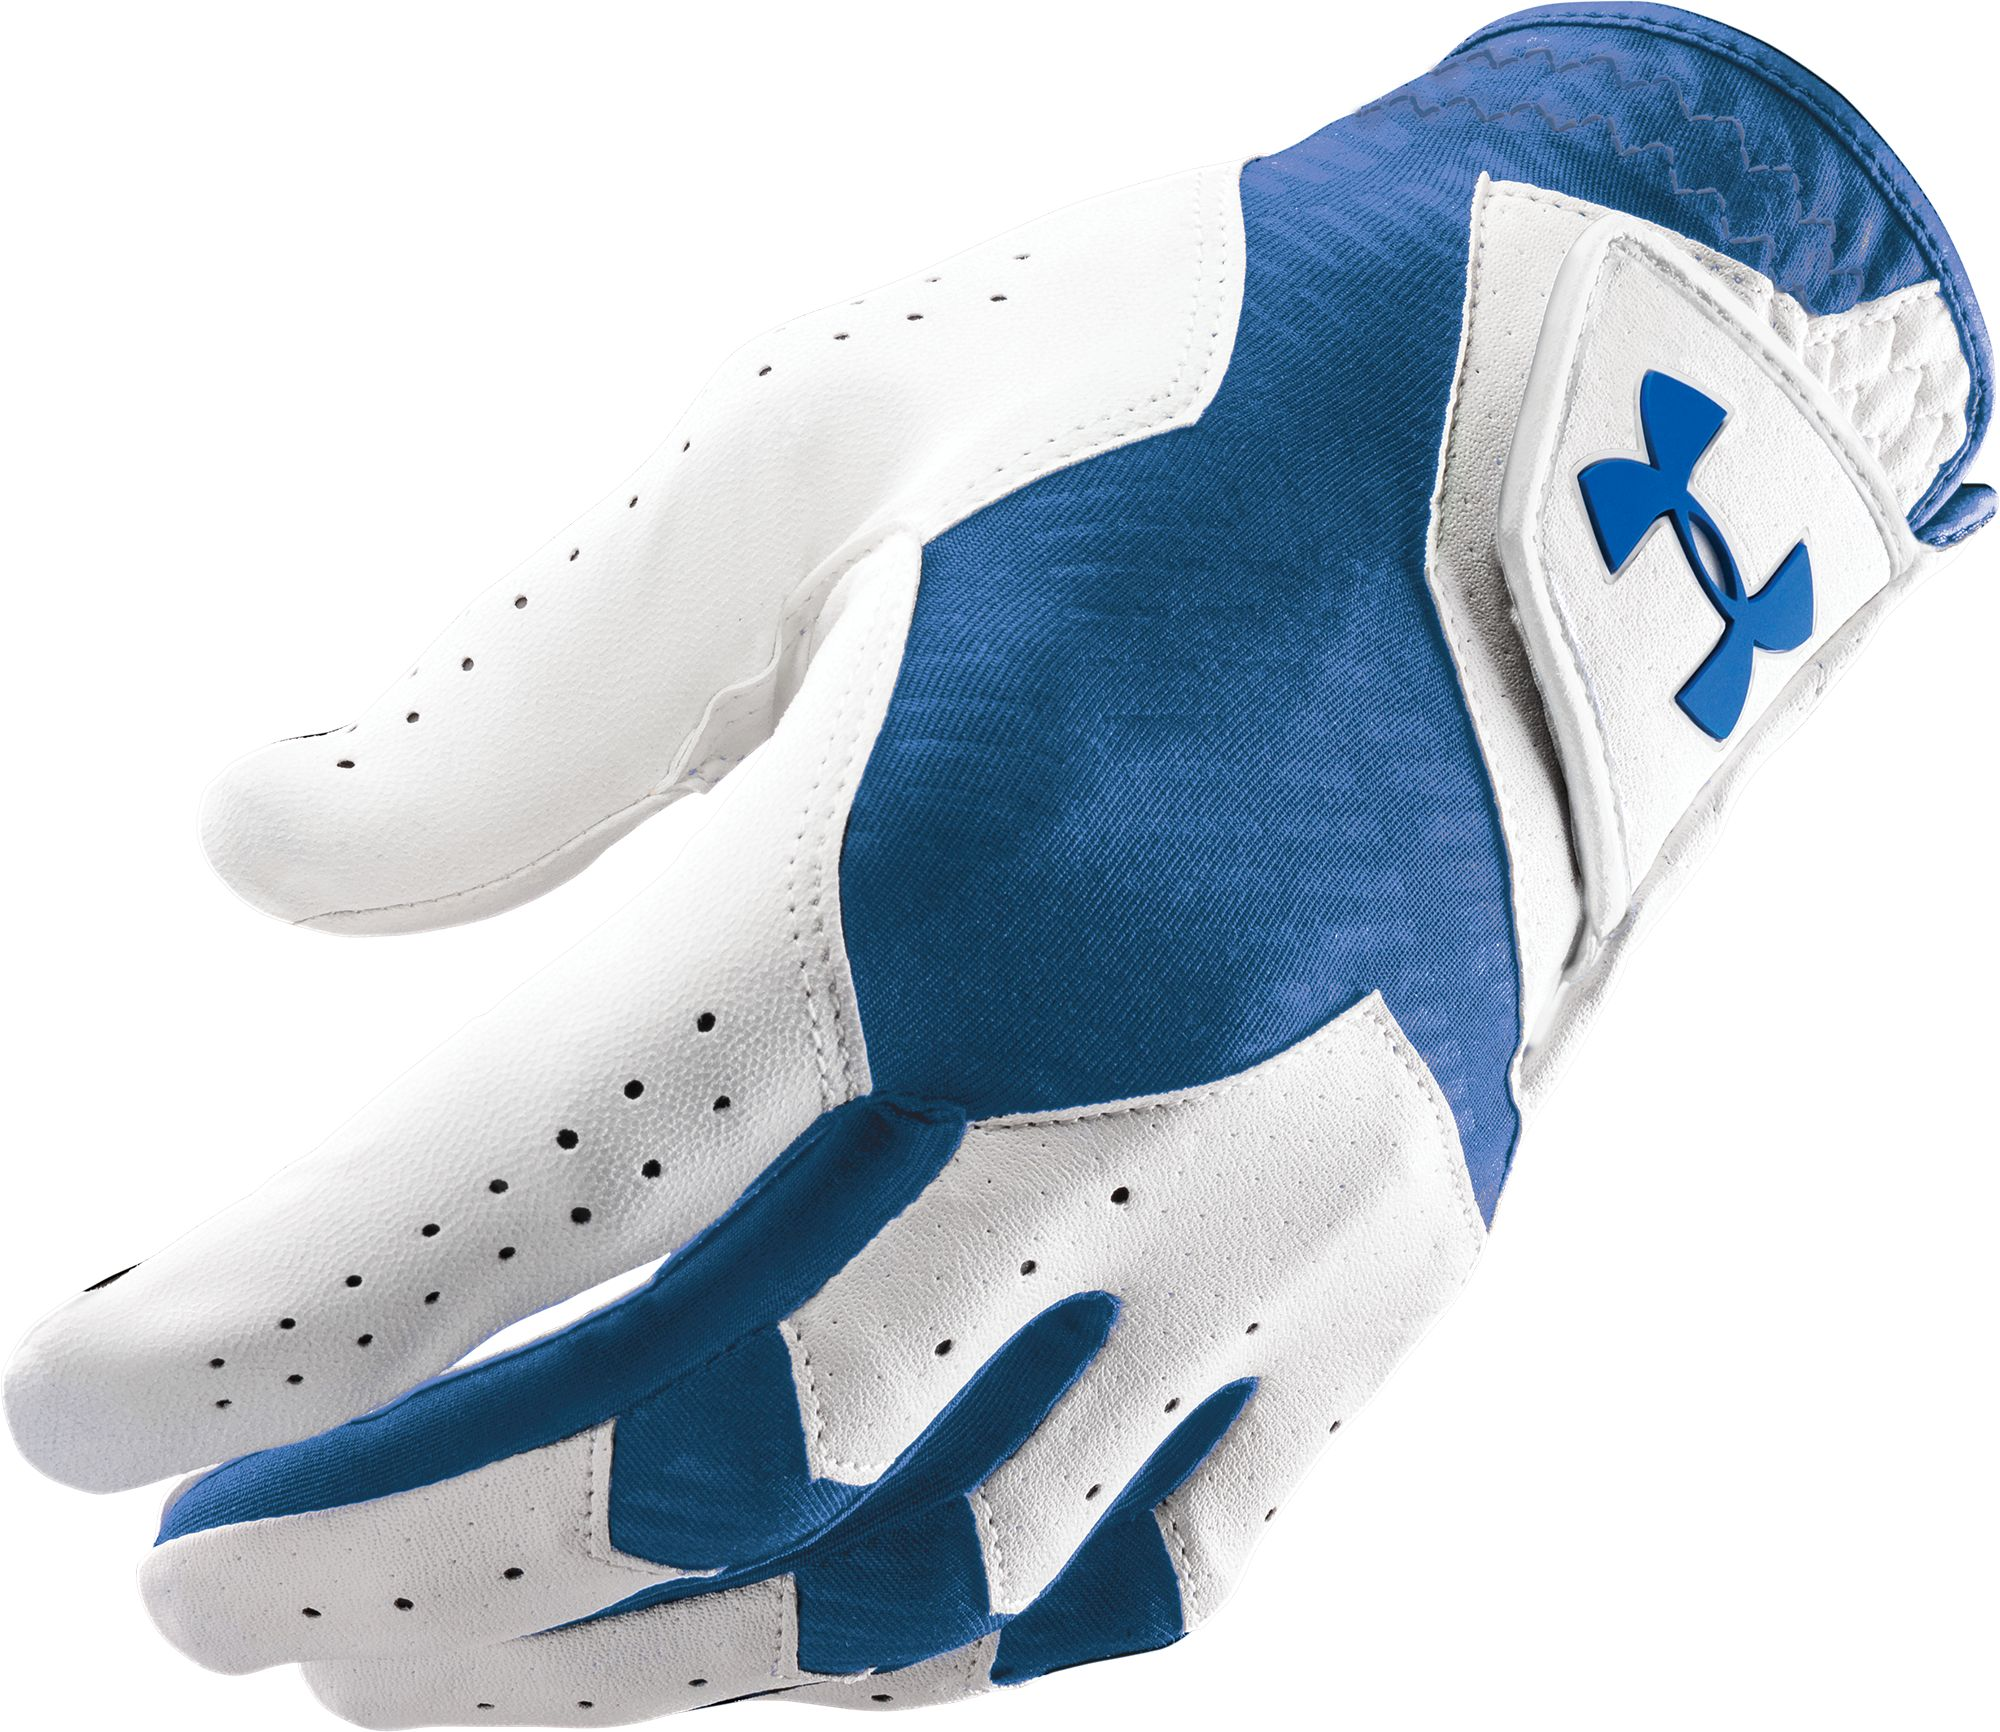 Mens golf gloves xxl - Product Image Under Armour Coolswitch Golf Glove